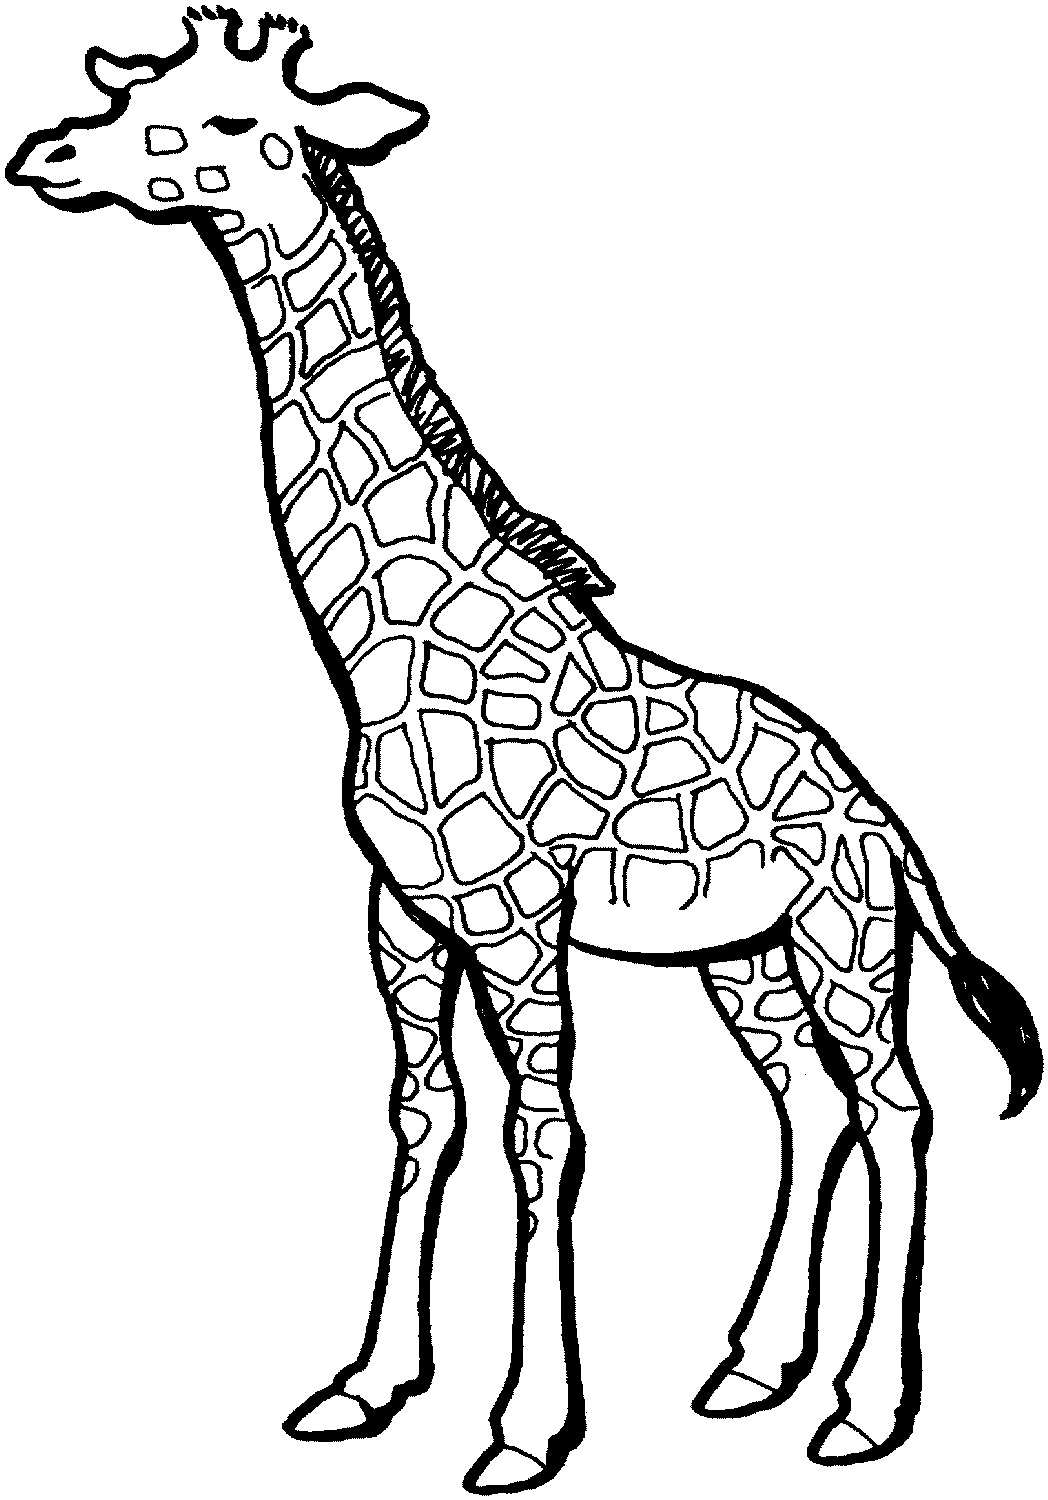 Free Printable Giraffe Coloring Pages For Kids.